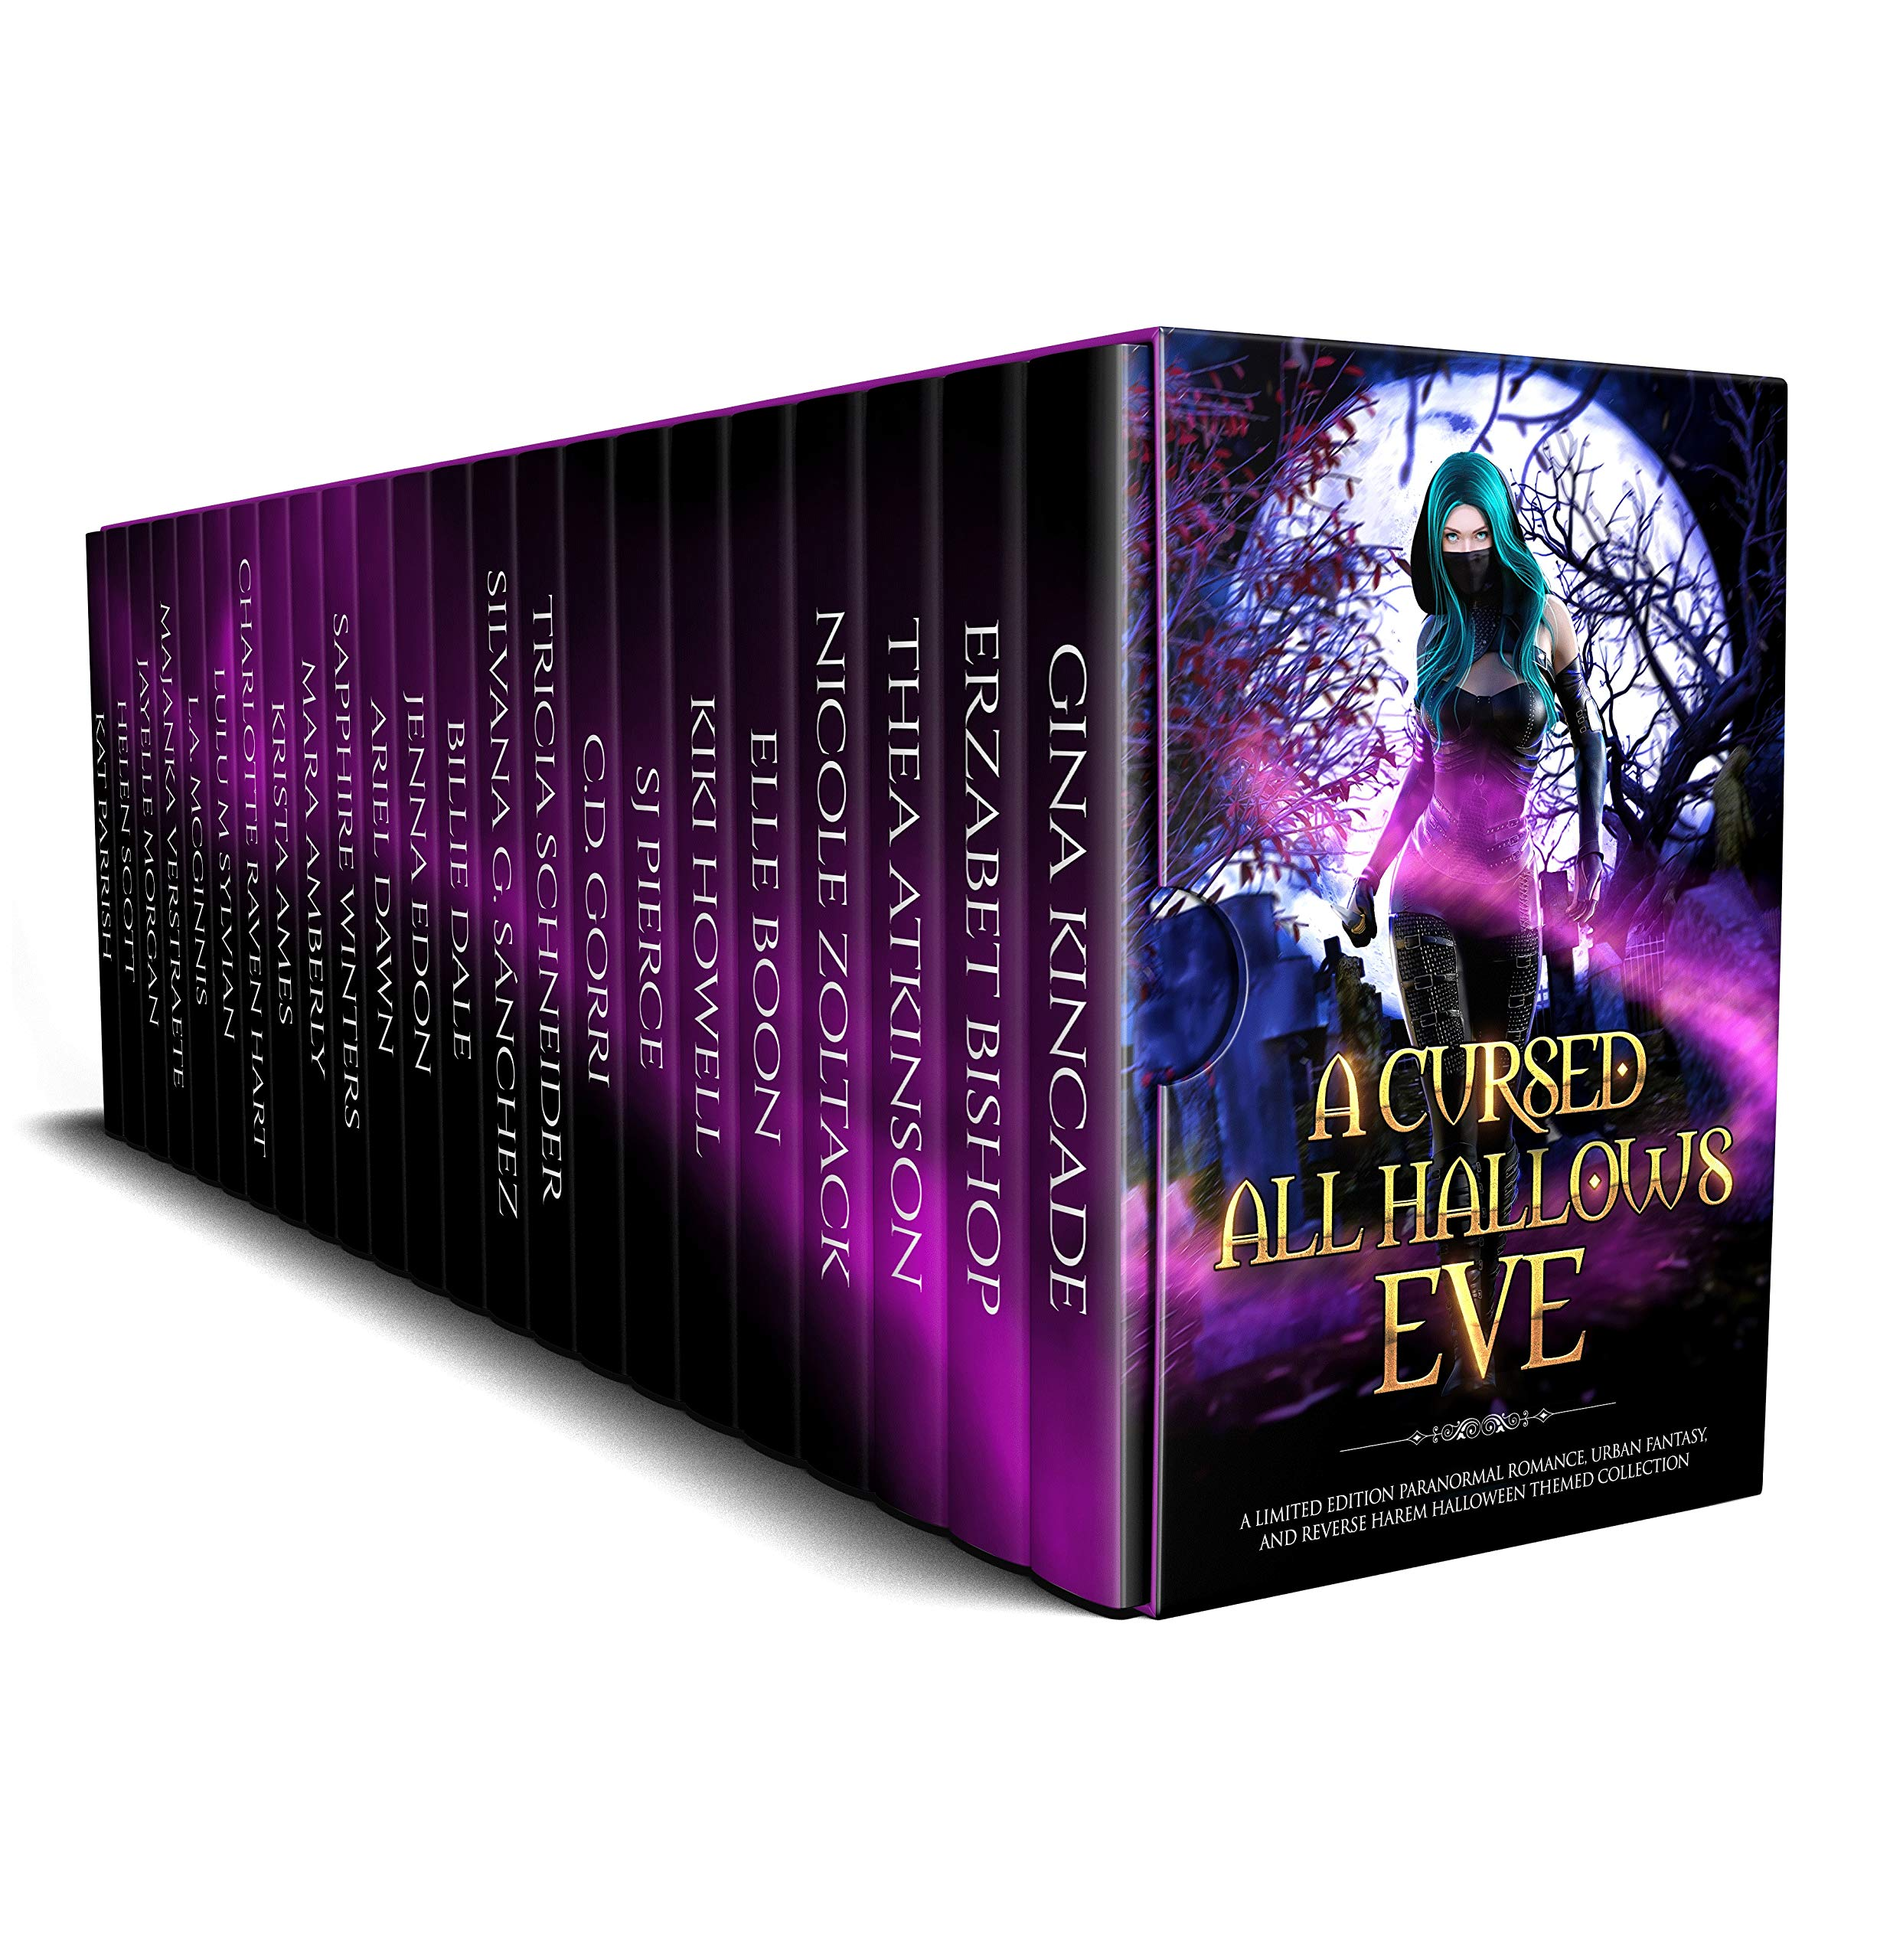 A Cursed All Hallows' Eve: A Limited Edition Paranormal Romance, Urban Fantasy, and Reverse Harem Halloween Themed Collection